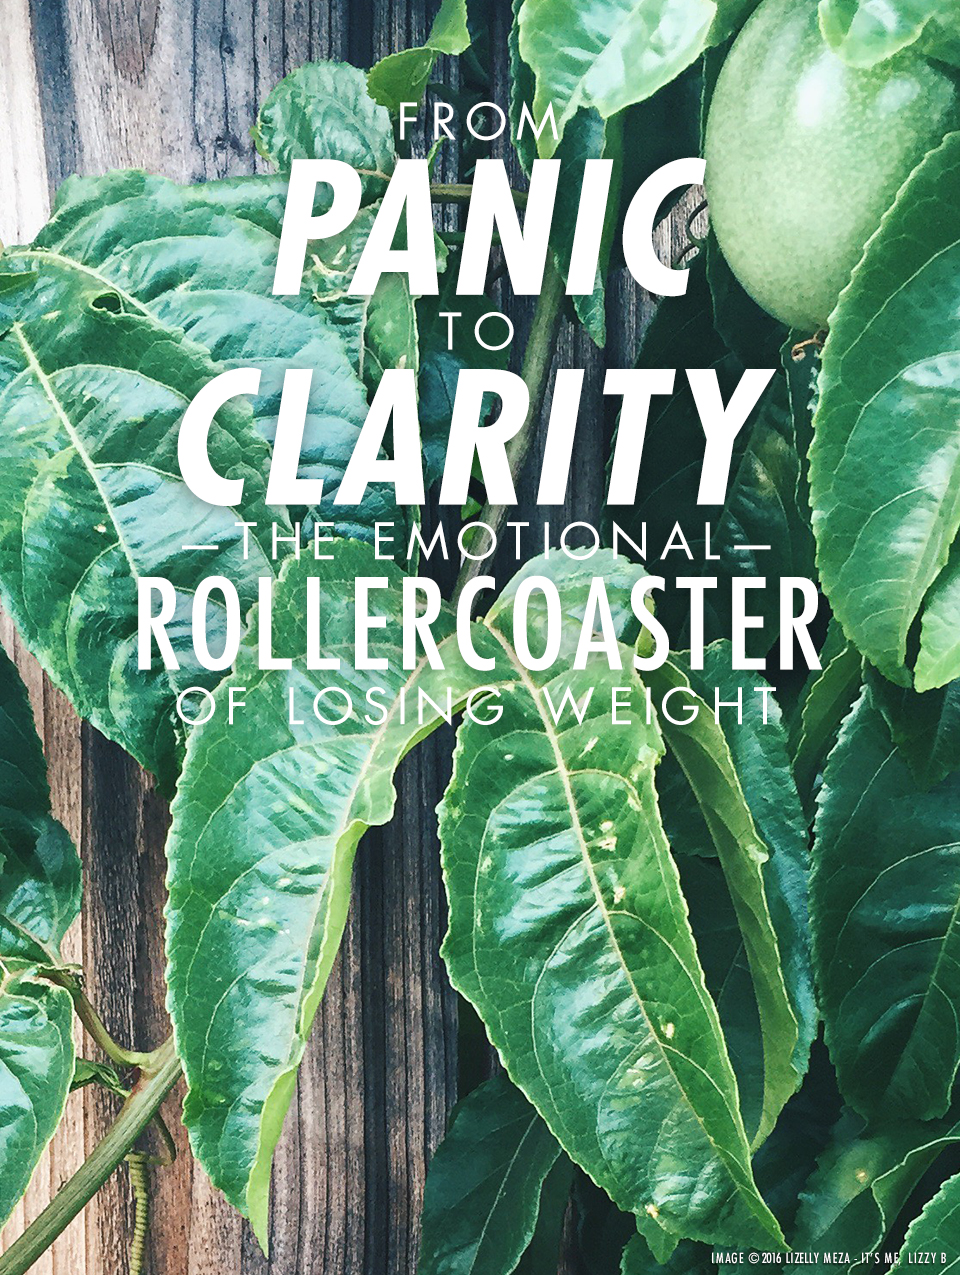 From Panic to Clarity—The Emotional Rollercoaster of Losing Weight // It's Me, Lizzy B - Musings on Life, Business, & The Pursuit of Everyday Joy // Personal blog of Lizelly Meza from Lizzy B Loves